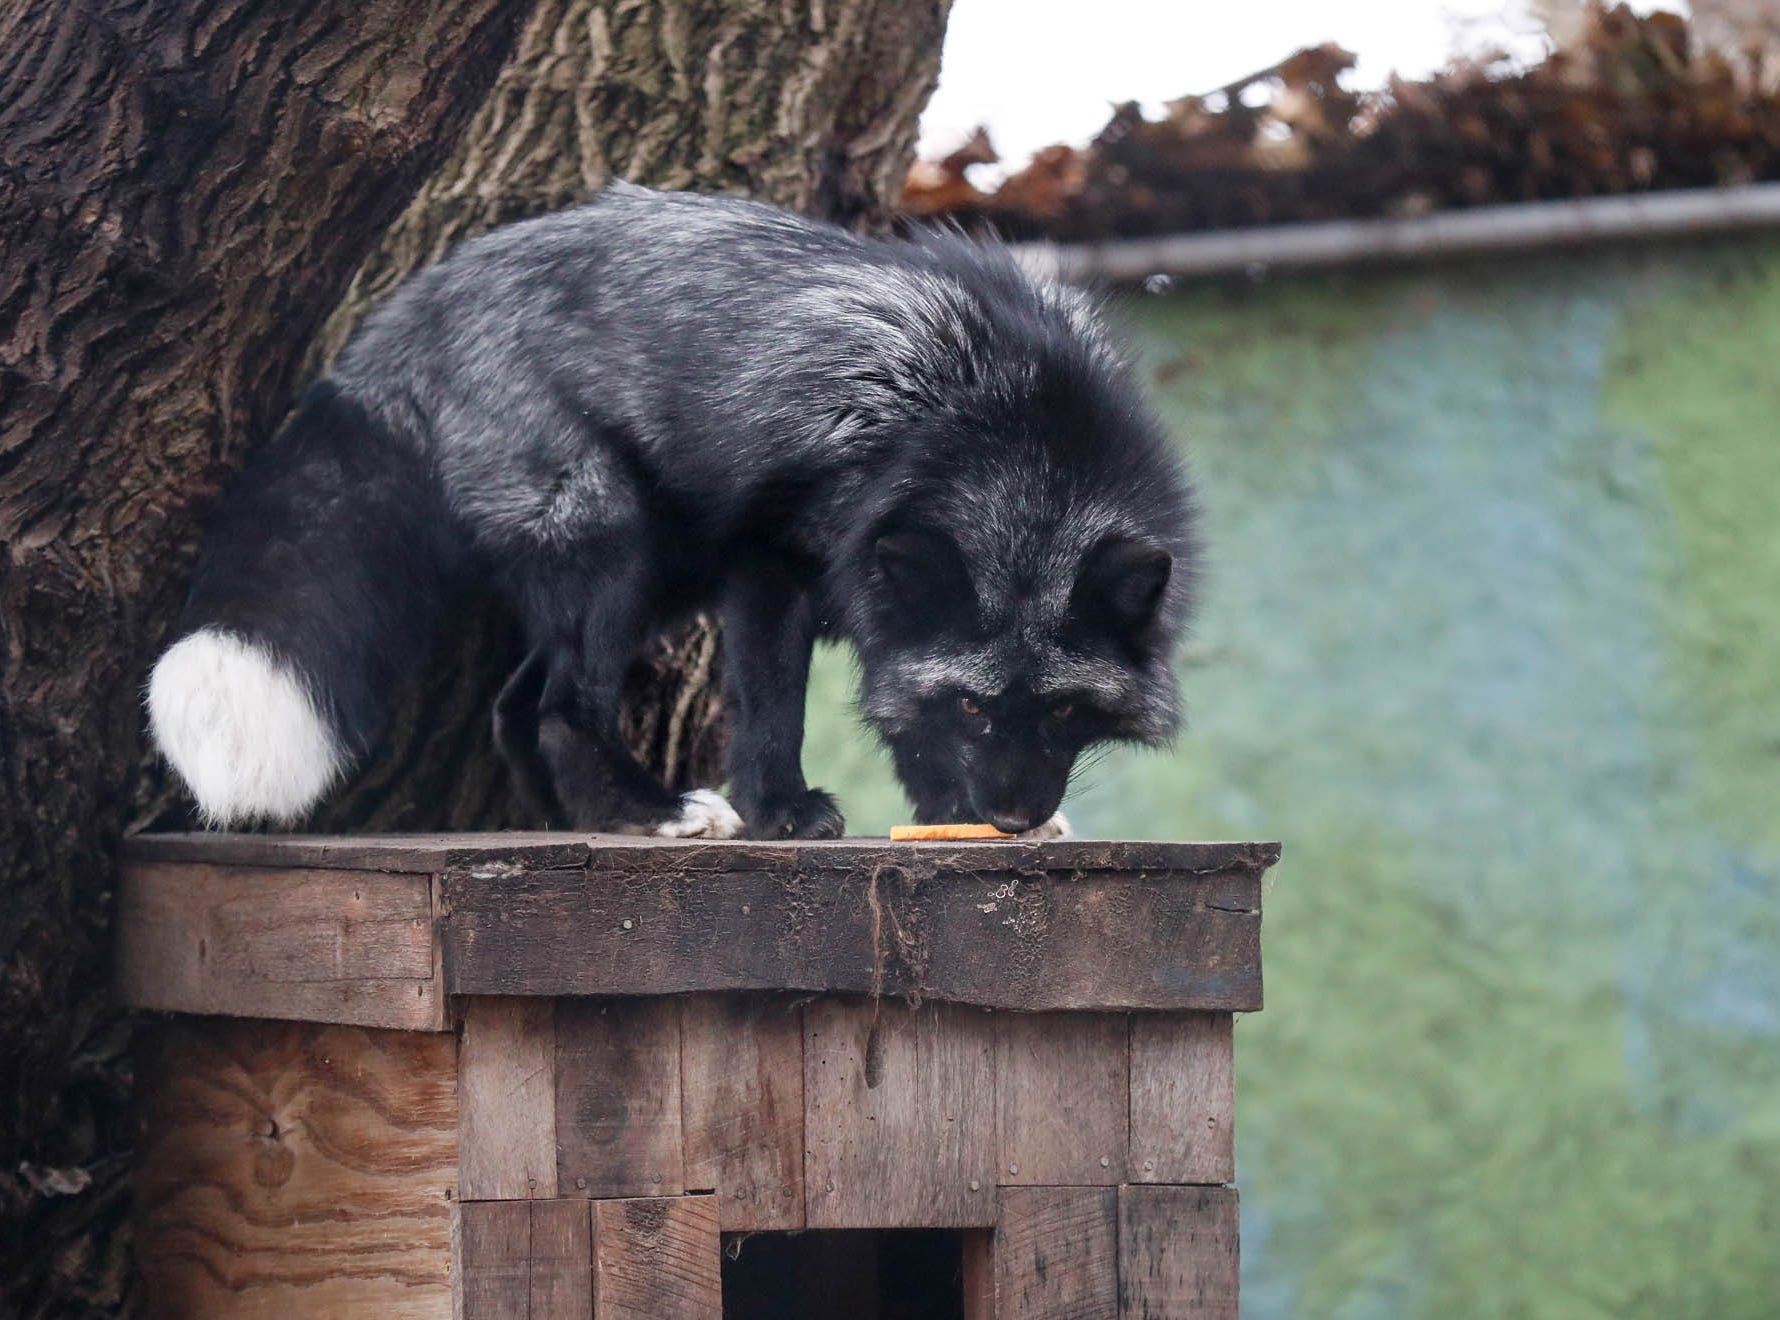 Joker, a red fox, enjoys tasty Christmas treats which decorated the fox enclosure at Wolf Park during Santa's annual visit in Battle Ground Indiana on Saturday, Dec. 15, 2018.